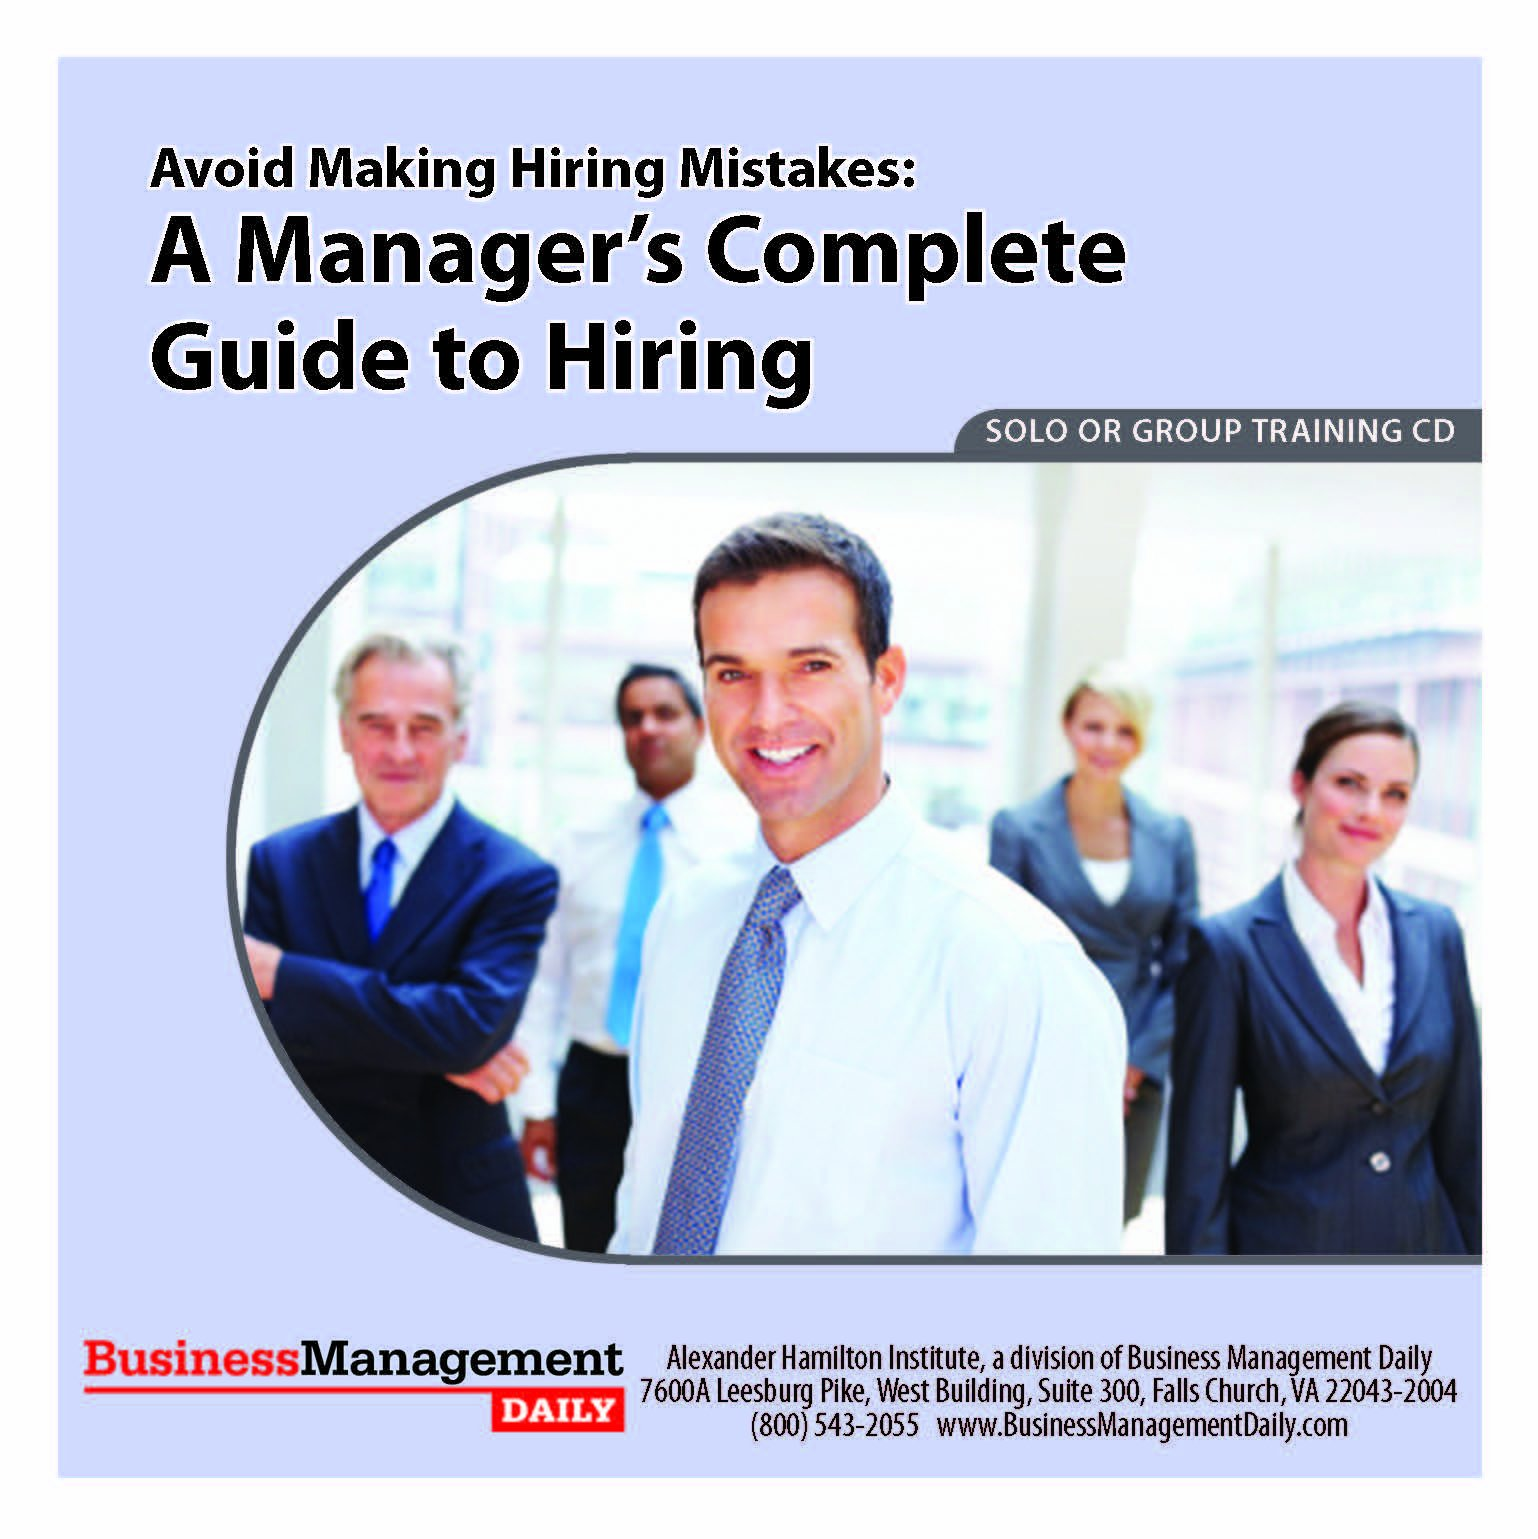 A Manager's Complete Guide to Hiring